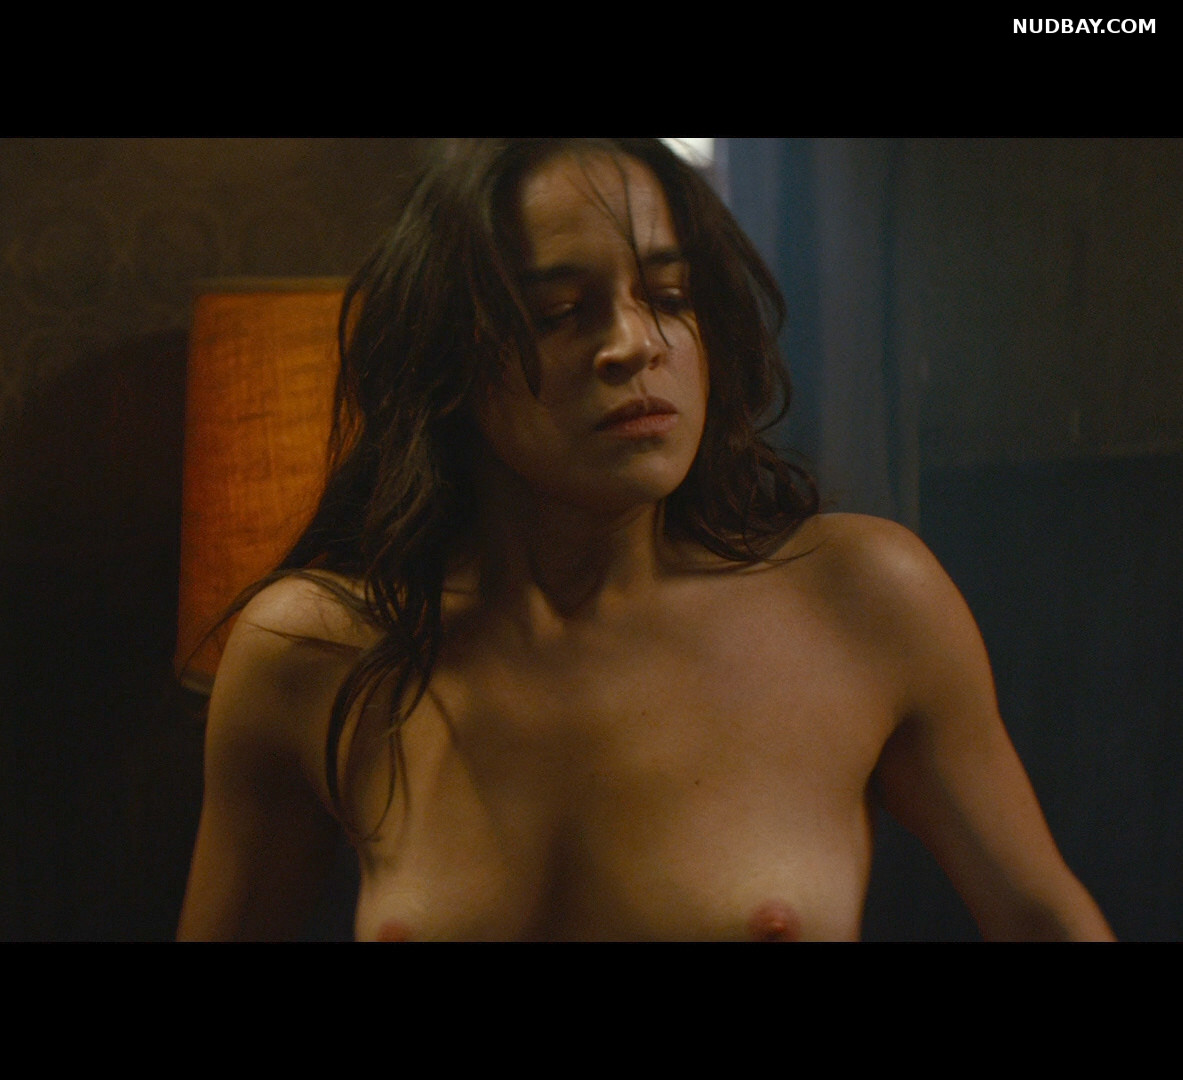 Michelle Rodriguez nude boobs The Assignment (2016)